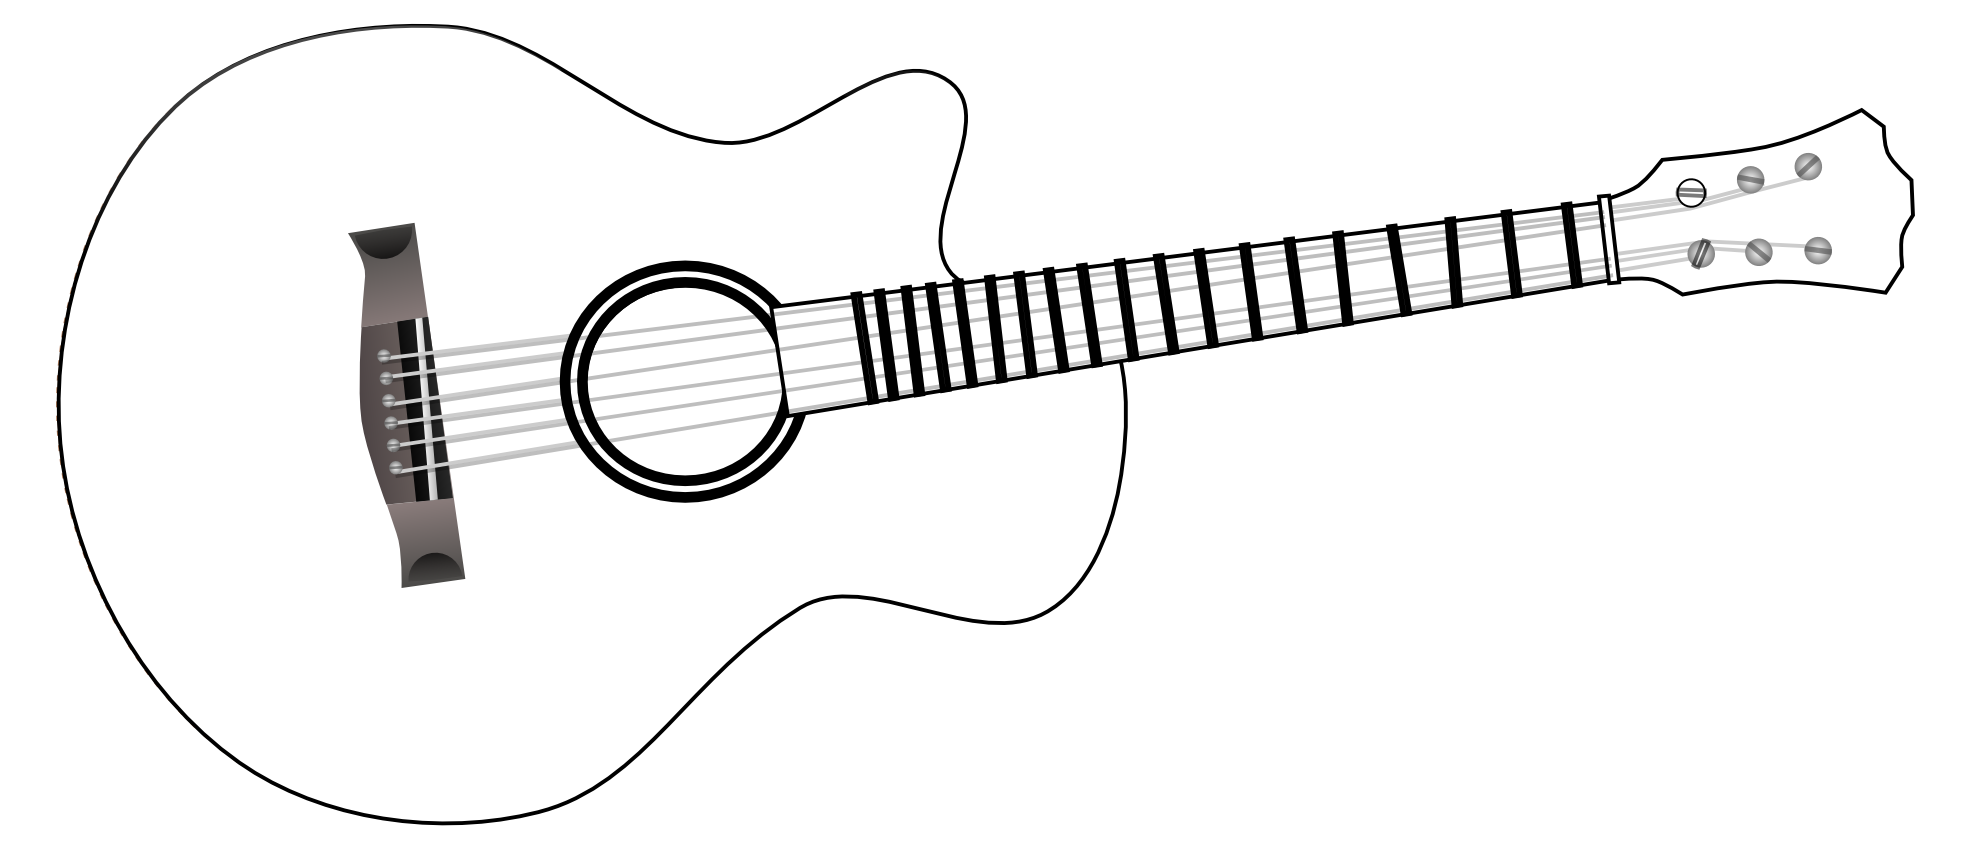 guitar clipart black and white amp look at clip art images